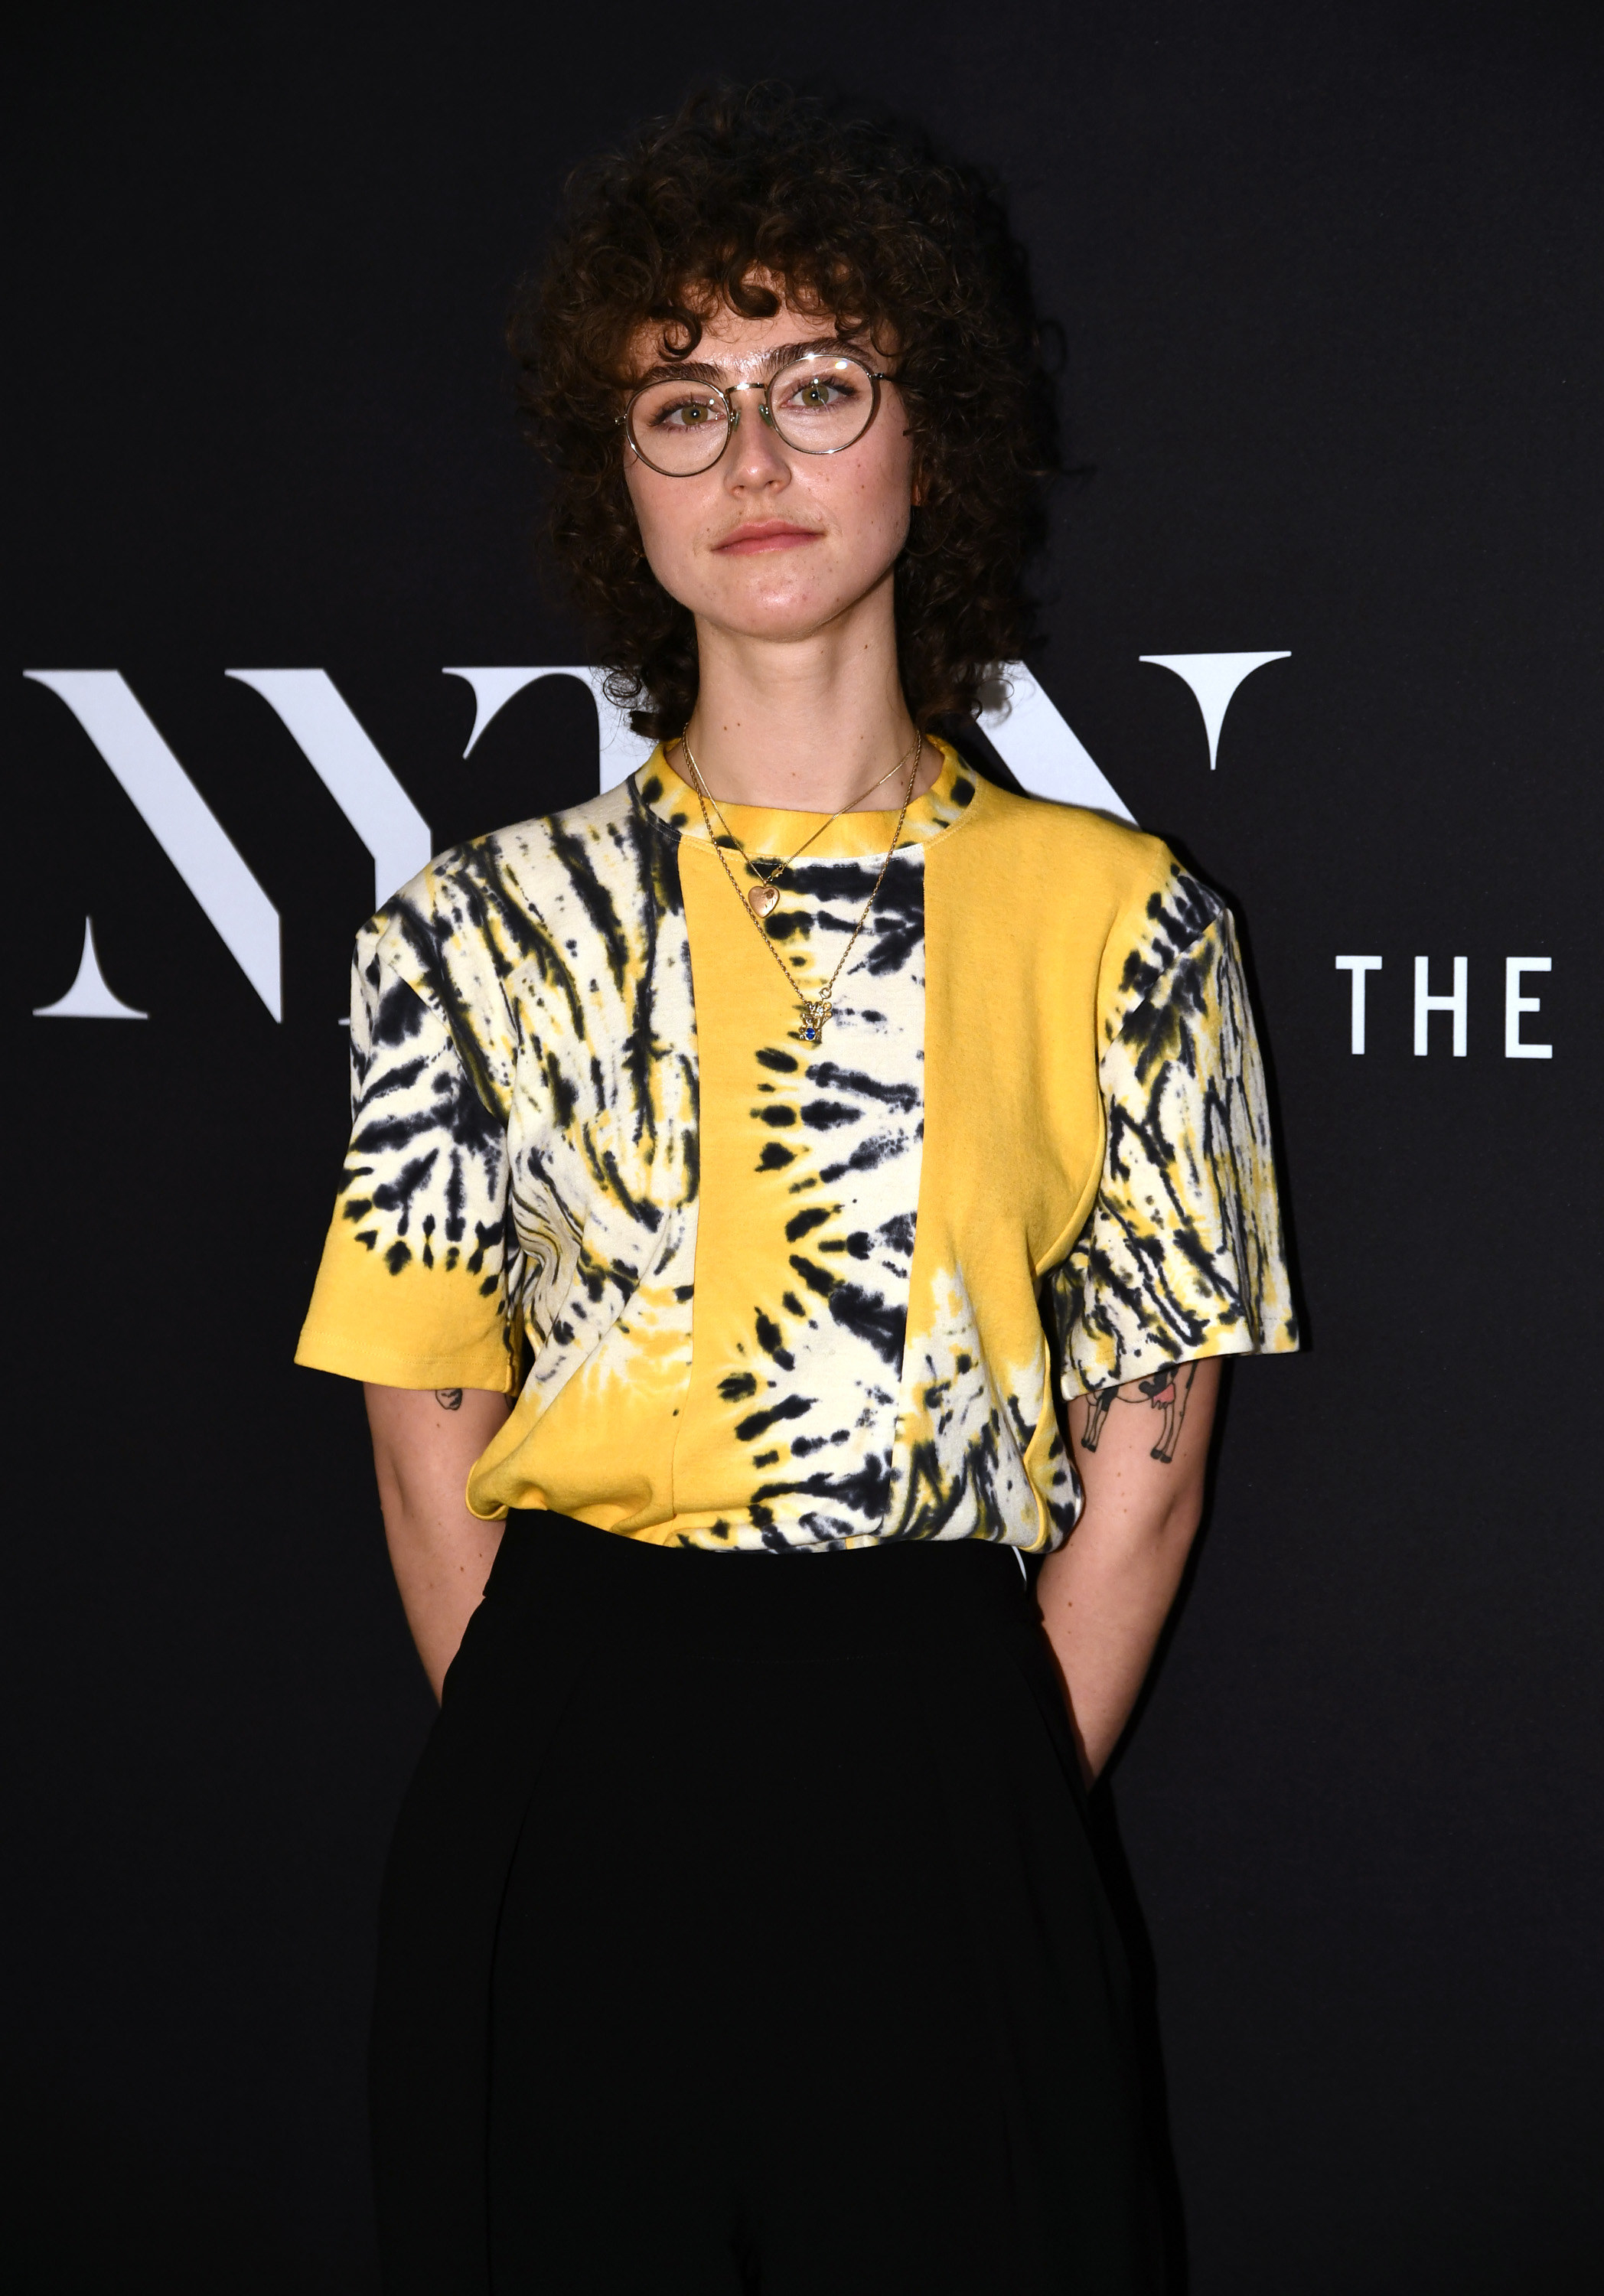 Ella Emhoff attends NYFW The Talks during New York Fashion Week: The Shows February 2021 at Spring Studios on February 15, 2021 in New York City